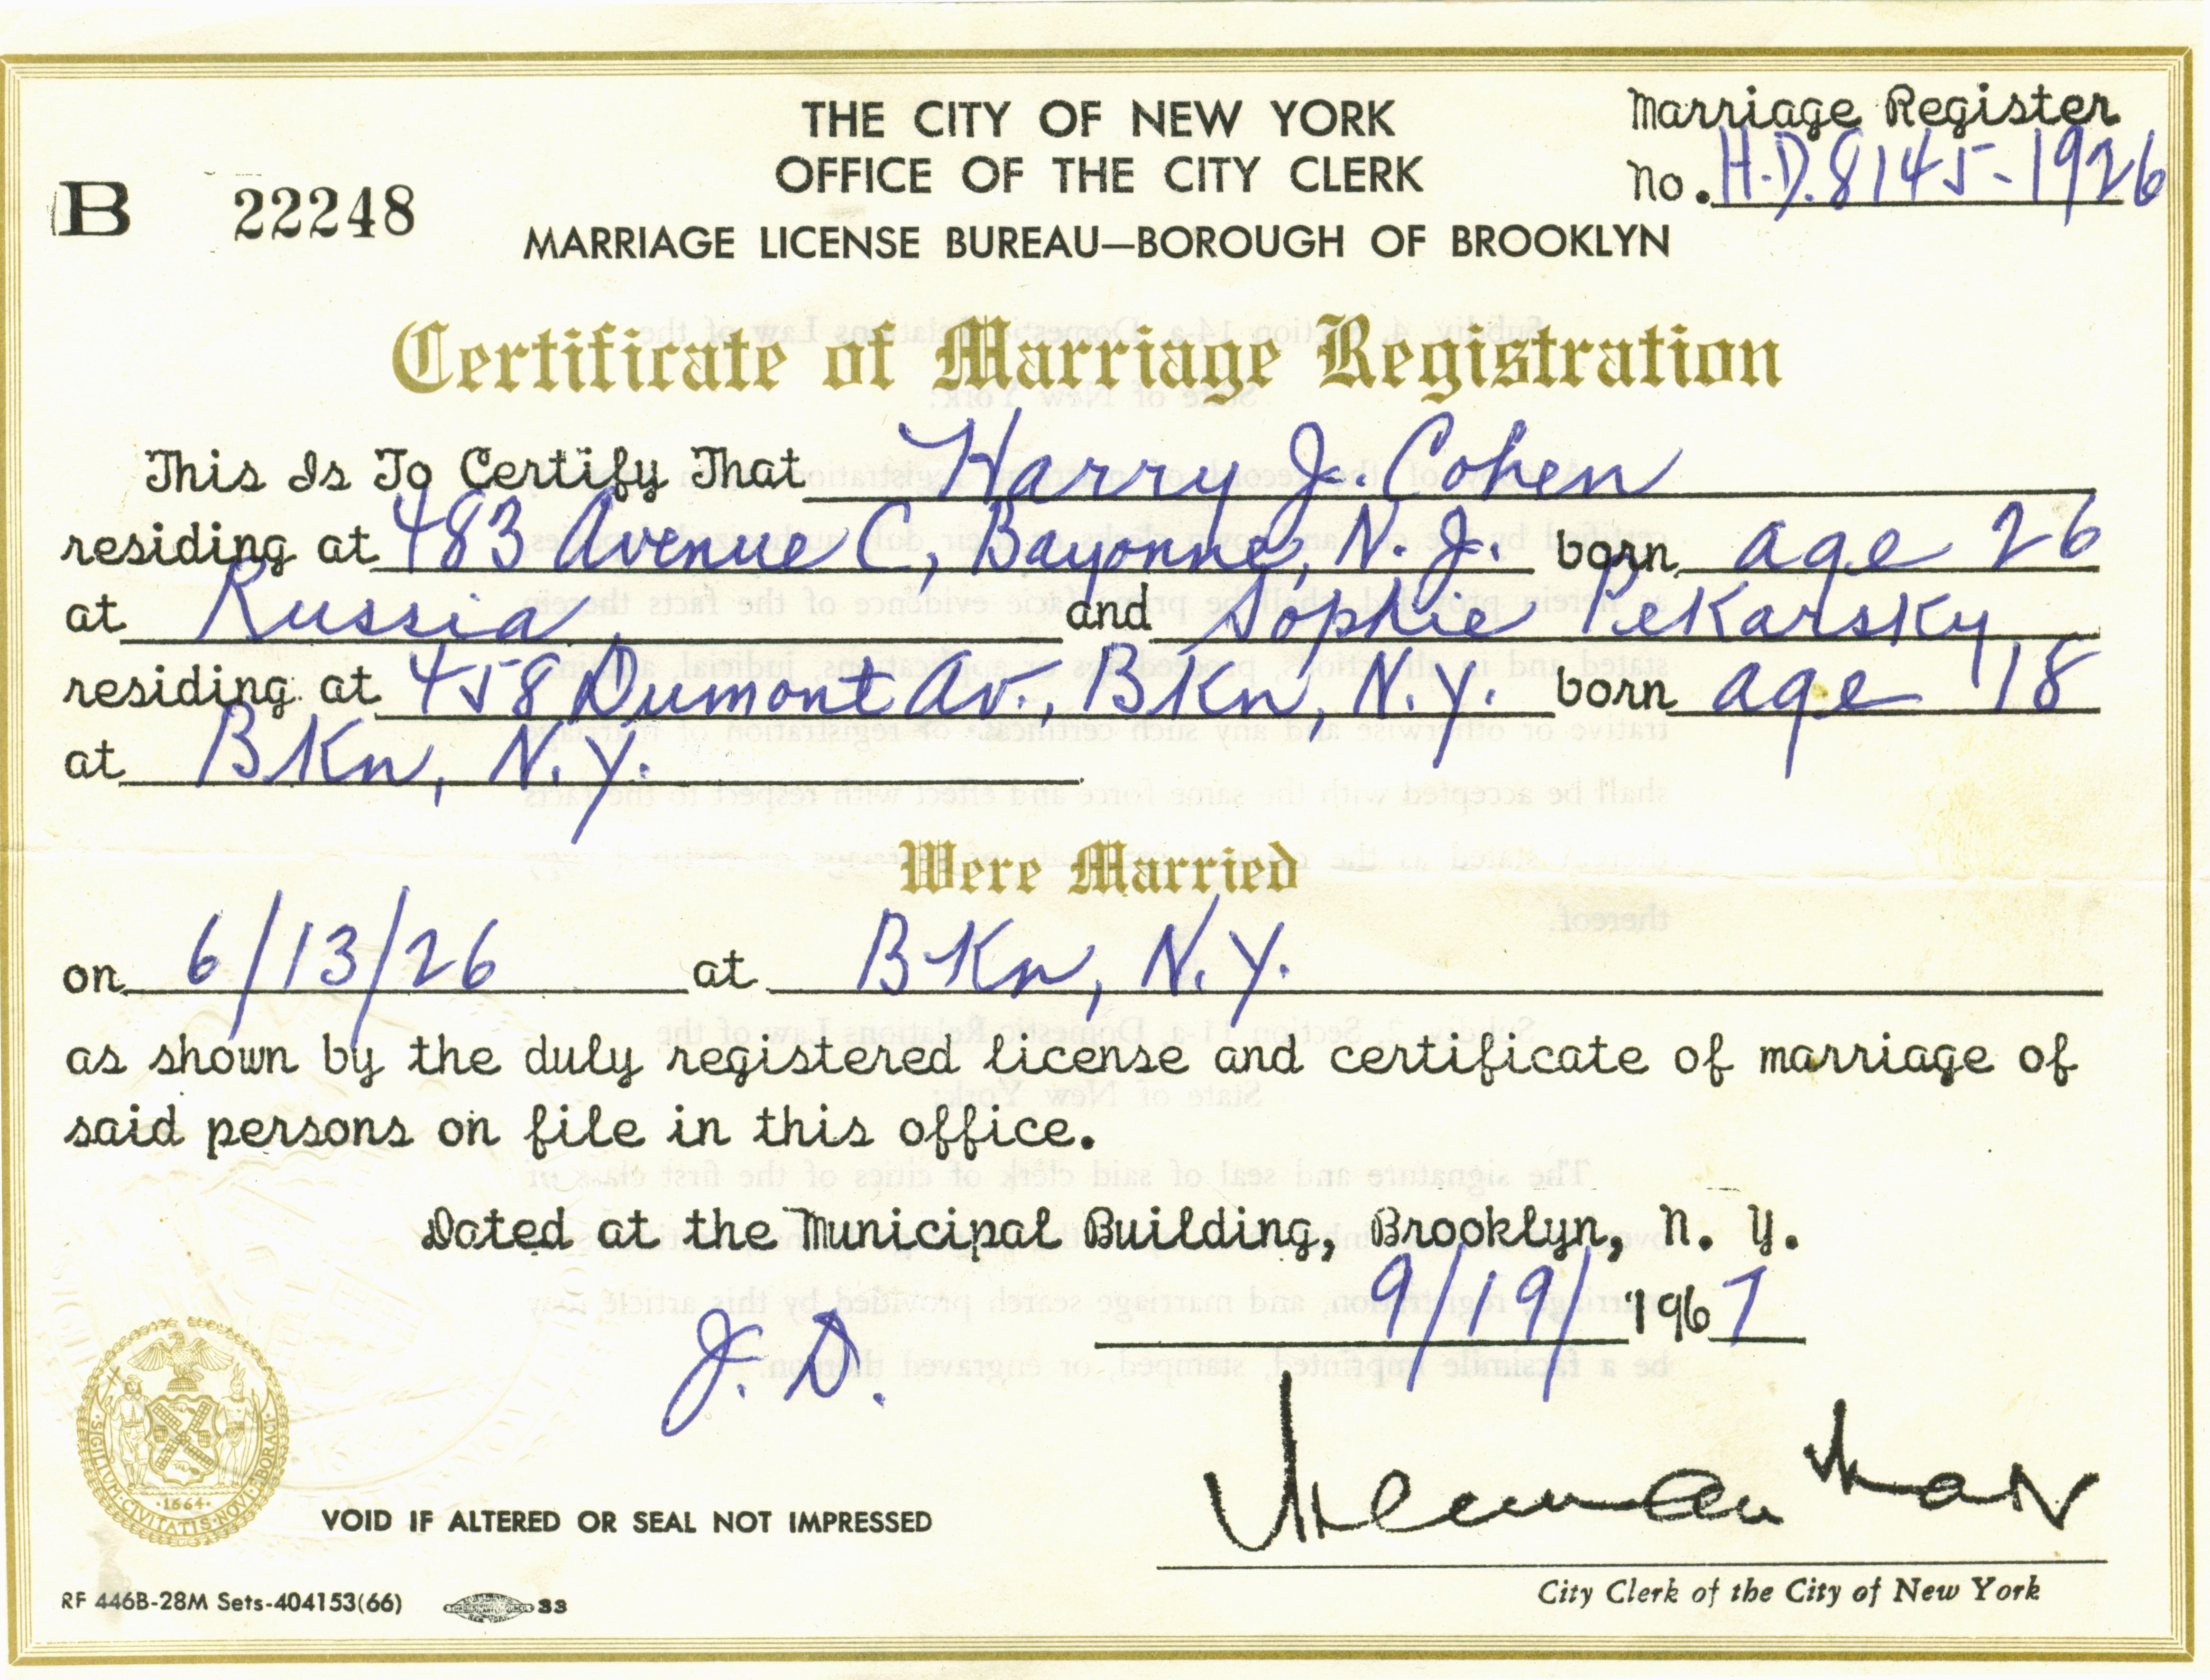 How To Get A Marriage License With Pictures: BMD Records